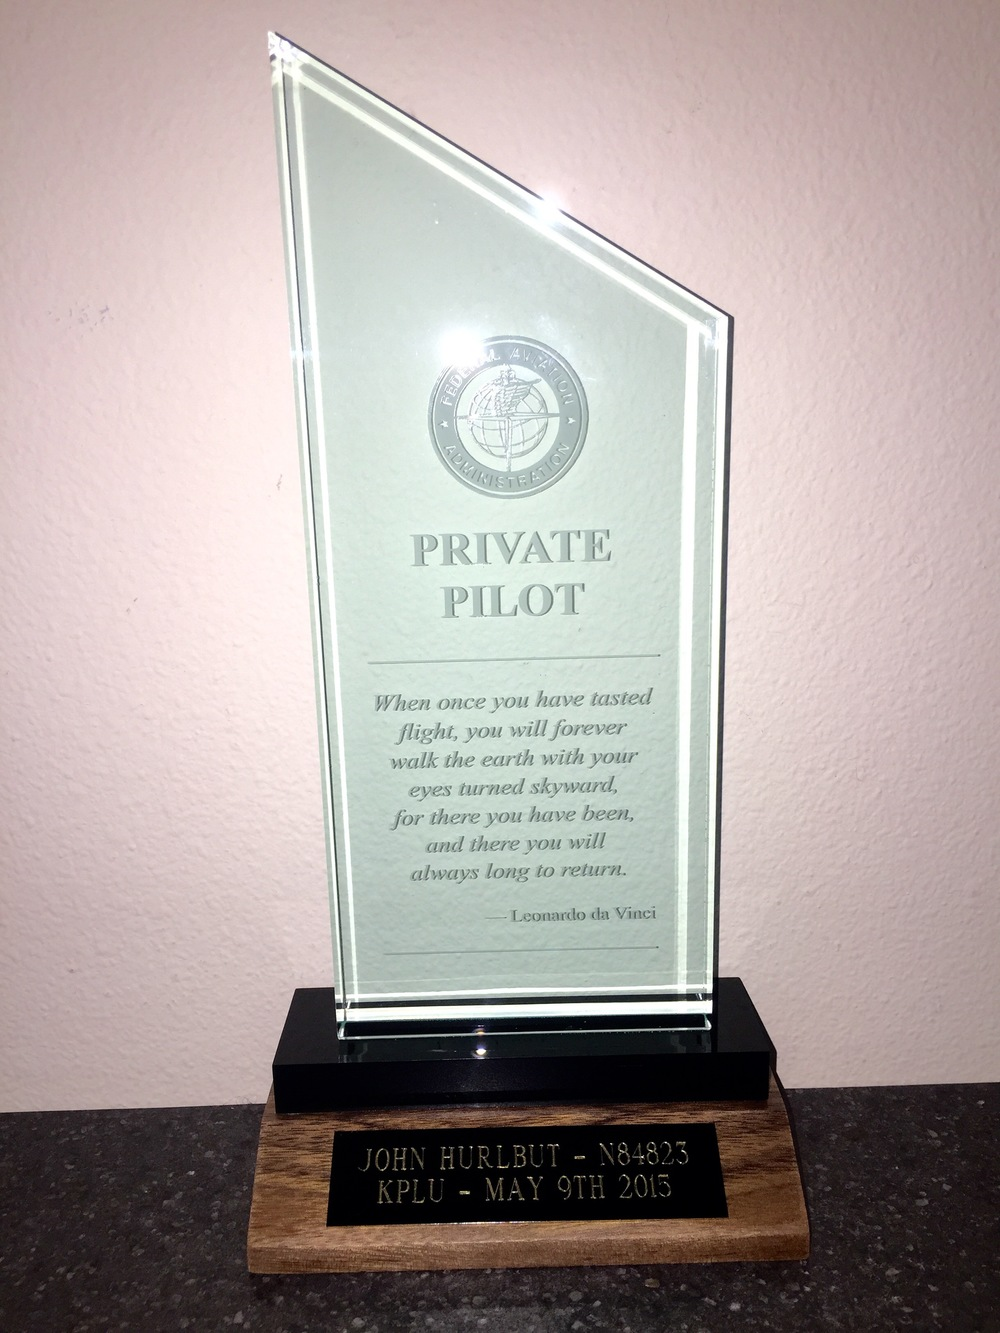 My Sporty's Private Pilot Trophy ... I'm all about the awards, even if I have to buy them myself! Click on this to read the quote by Leonardo Da Vinci, well worth it.